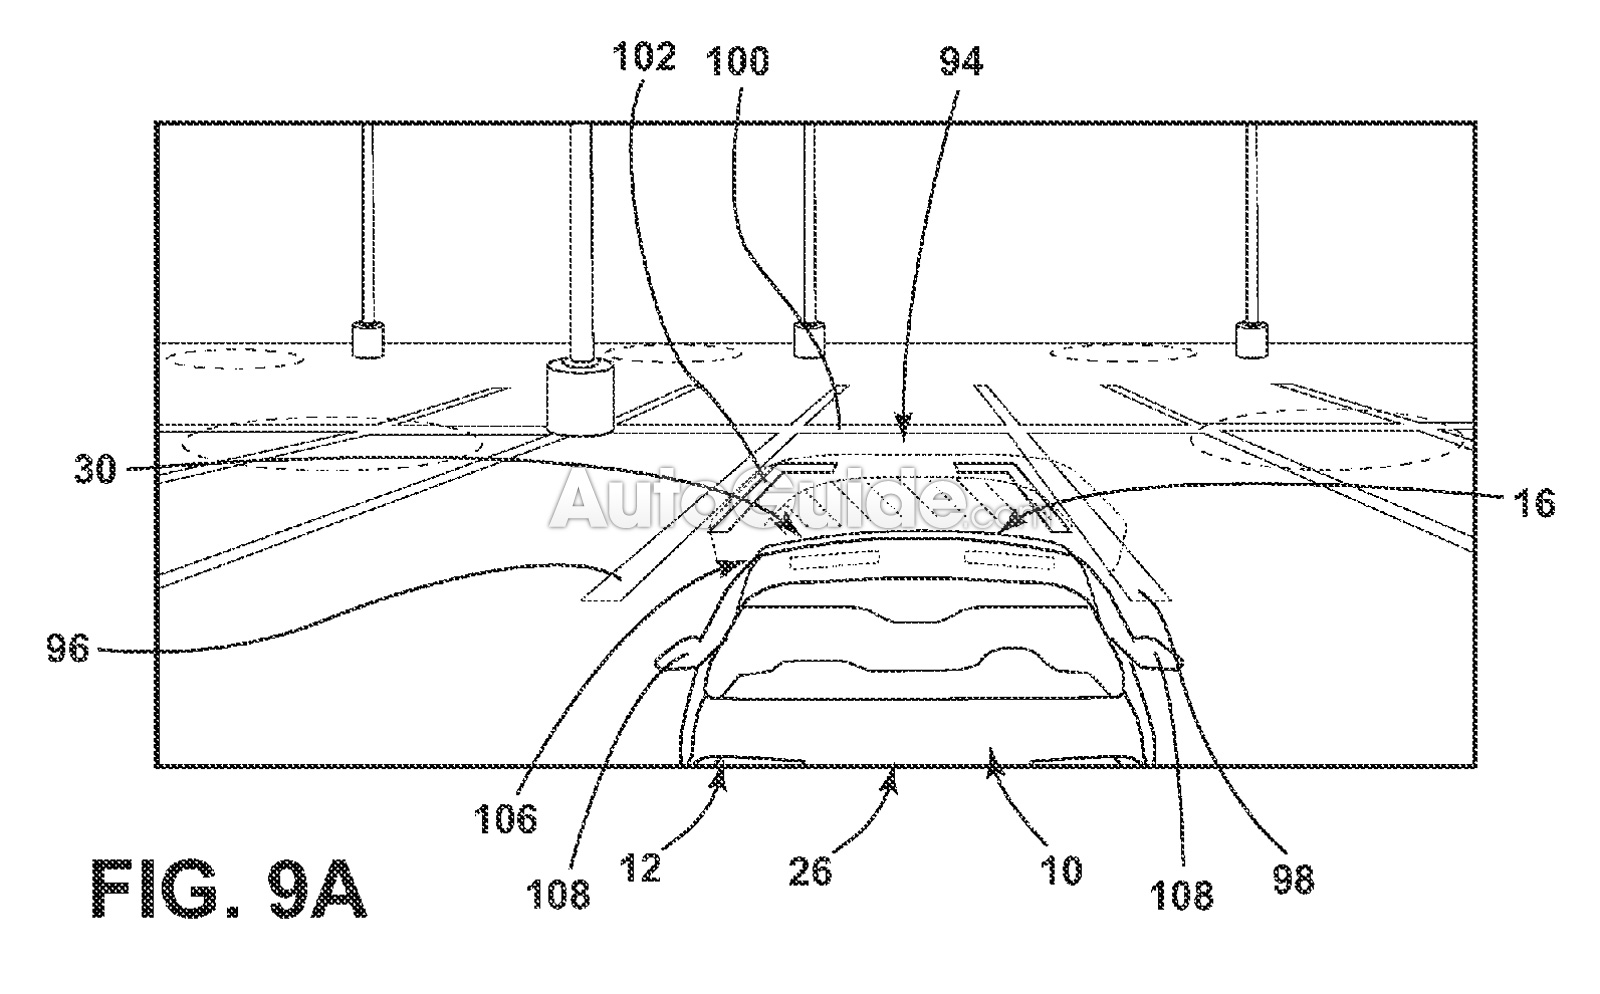 Fords New Light Patents Take The Guess Work Out Of Parking Vehicle Lighting Diagram Ford System With Dynamic Beam Pattern